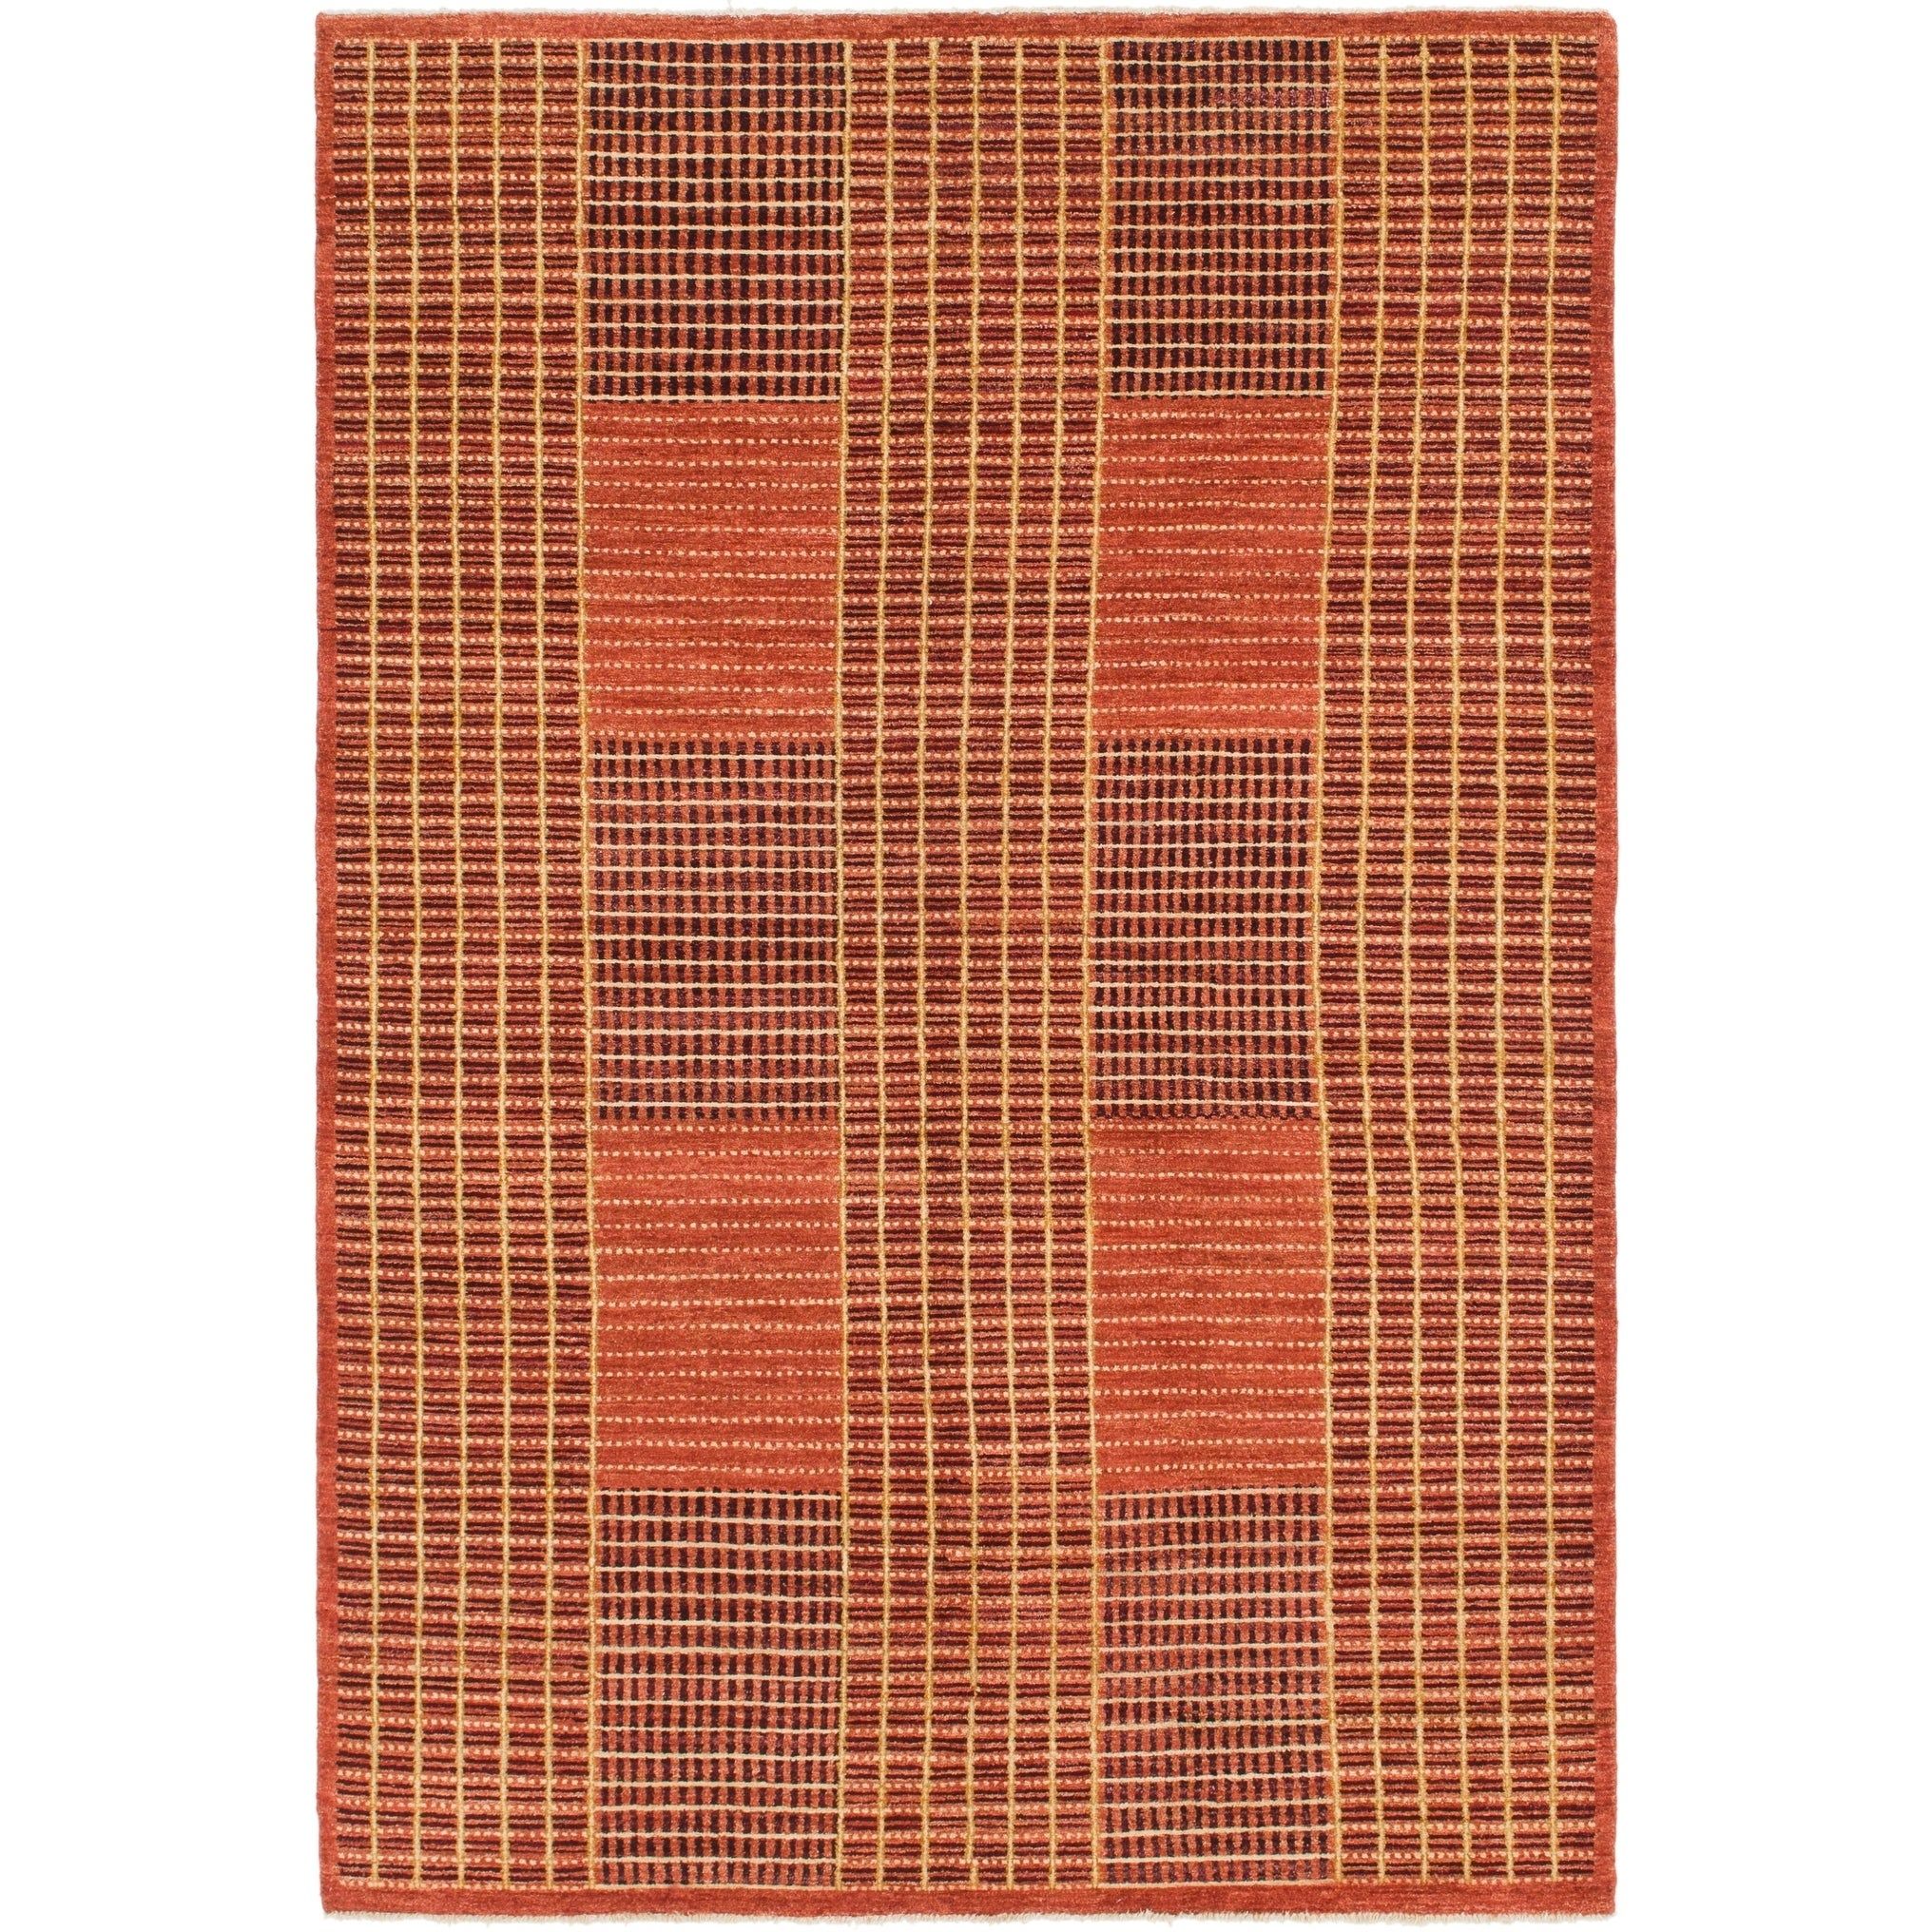 Hand Knotted Kashkuli Gabbeh Wool Area Rug - 5 10 x 8 7 (Rust Red - 5 10 x 8 7)